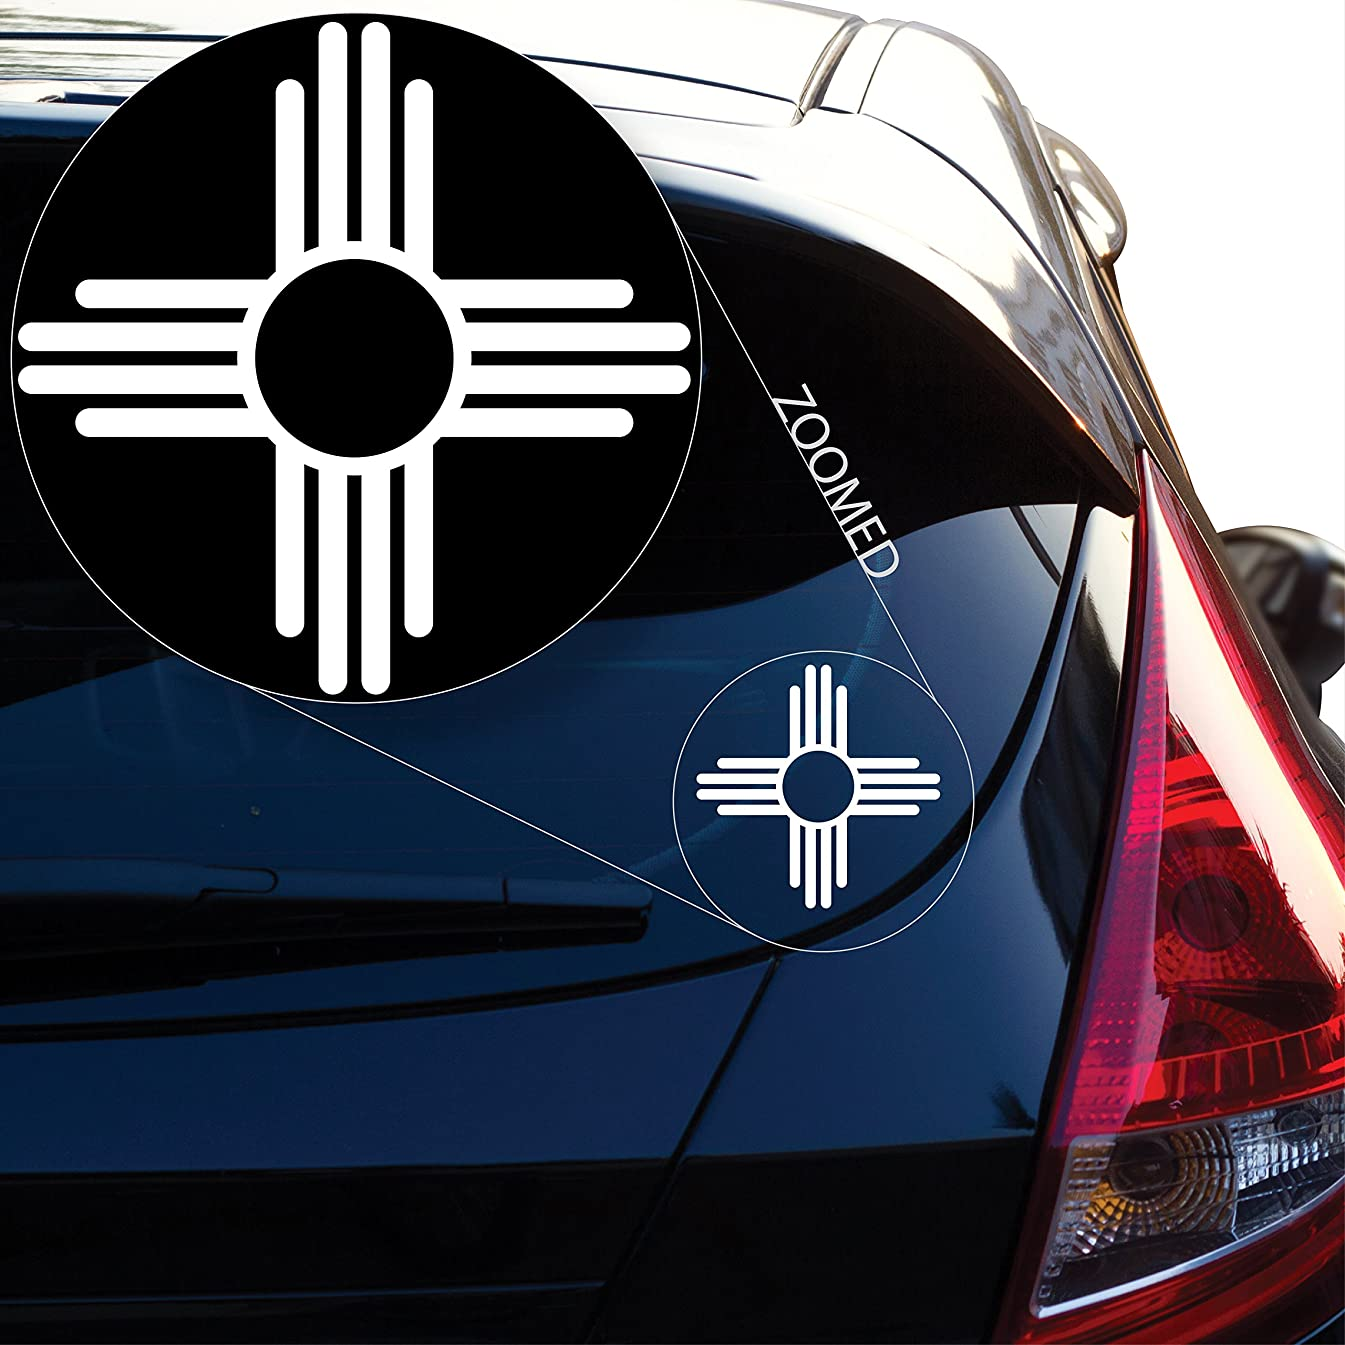 Yoonek Graphics New Mexico Flag logo Decal Sticker for Car Window, Laptop and More. #573 (4